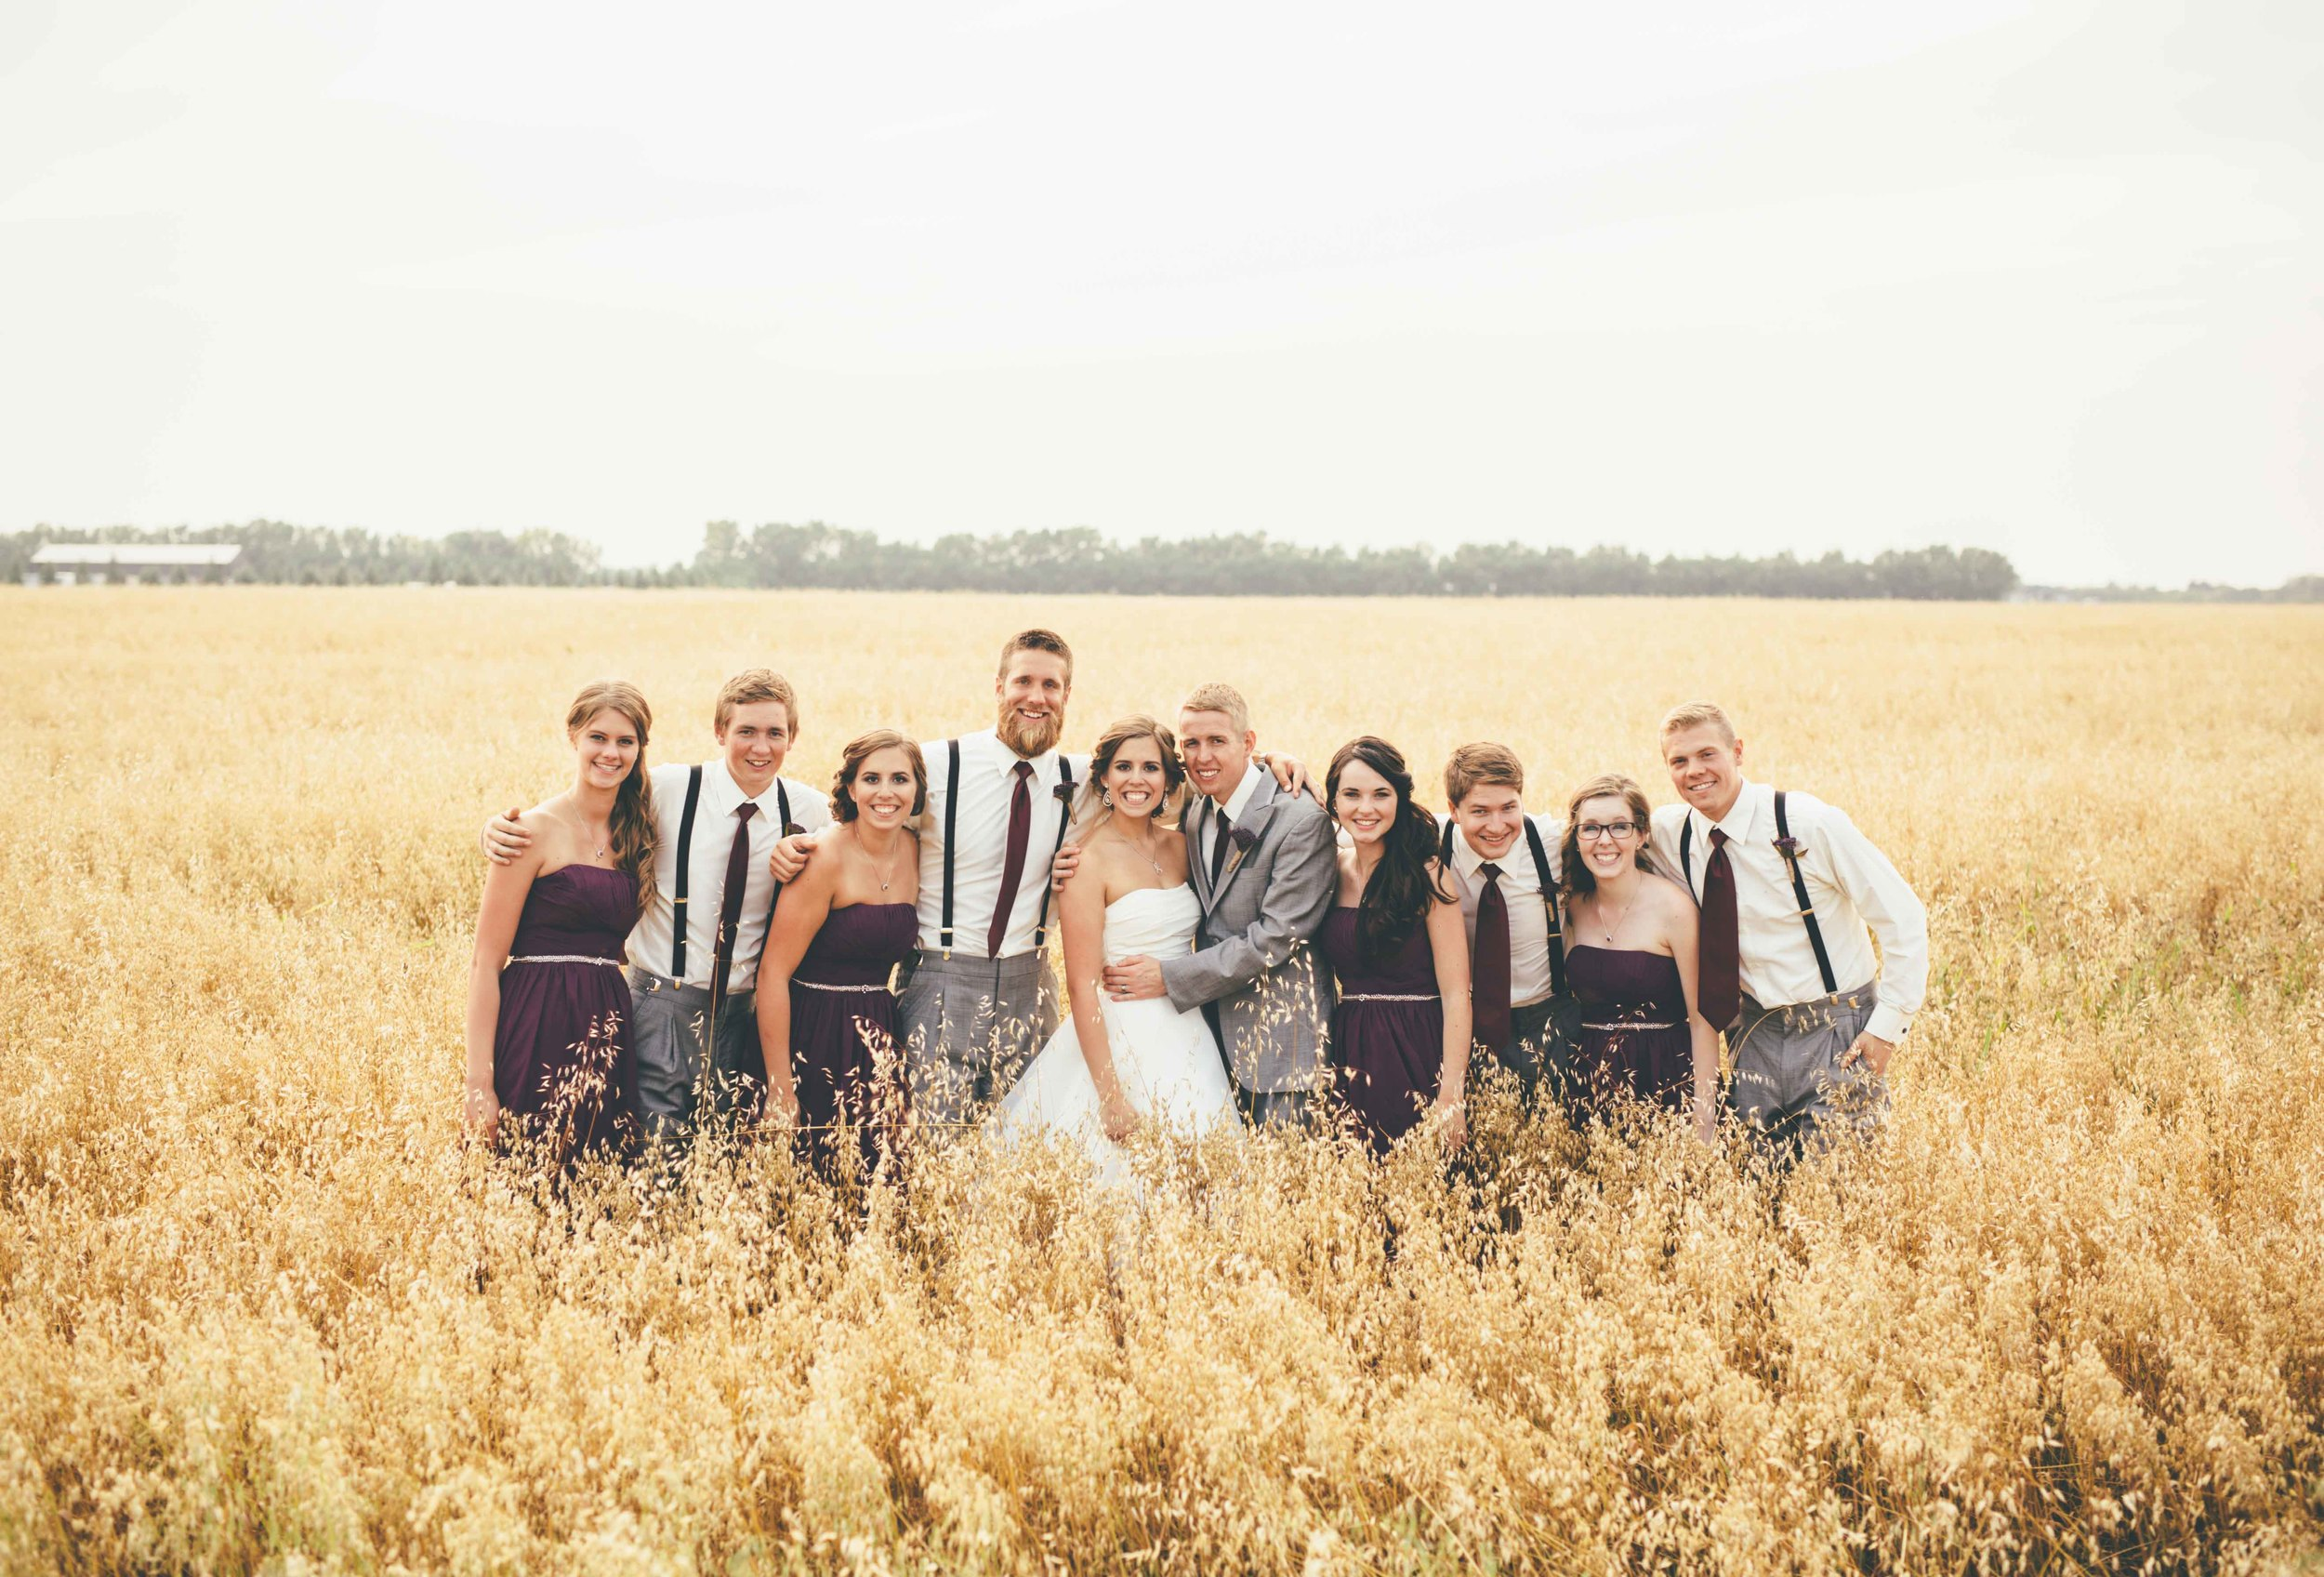 LaneMikaelaWeddingPhotos-35.jpg